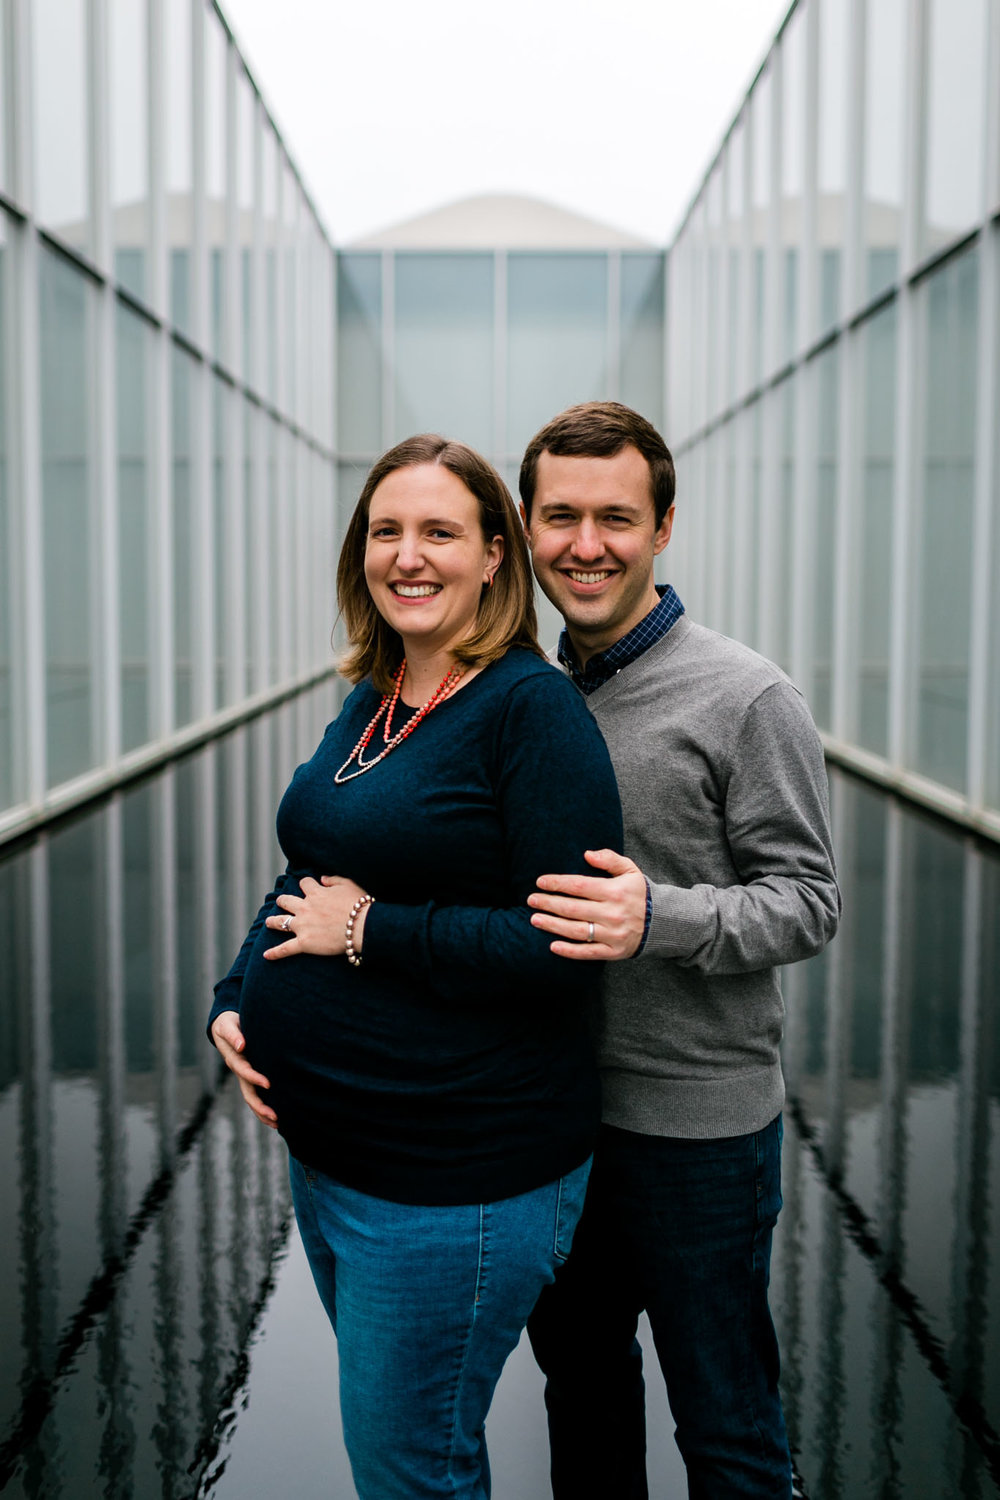 Modern maternity photo at NCMA | Raleigh Maternity Photographer | By G. Lin Photography